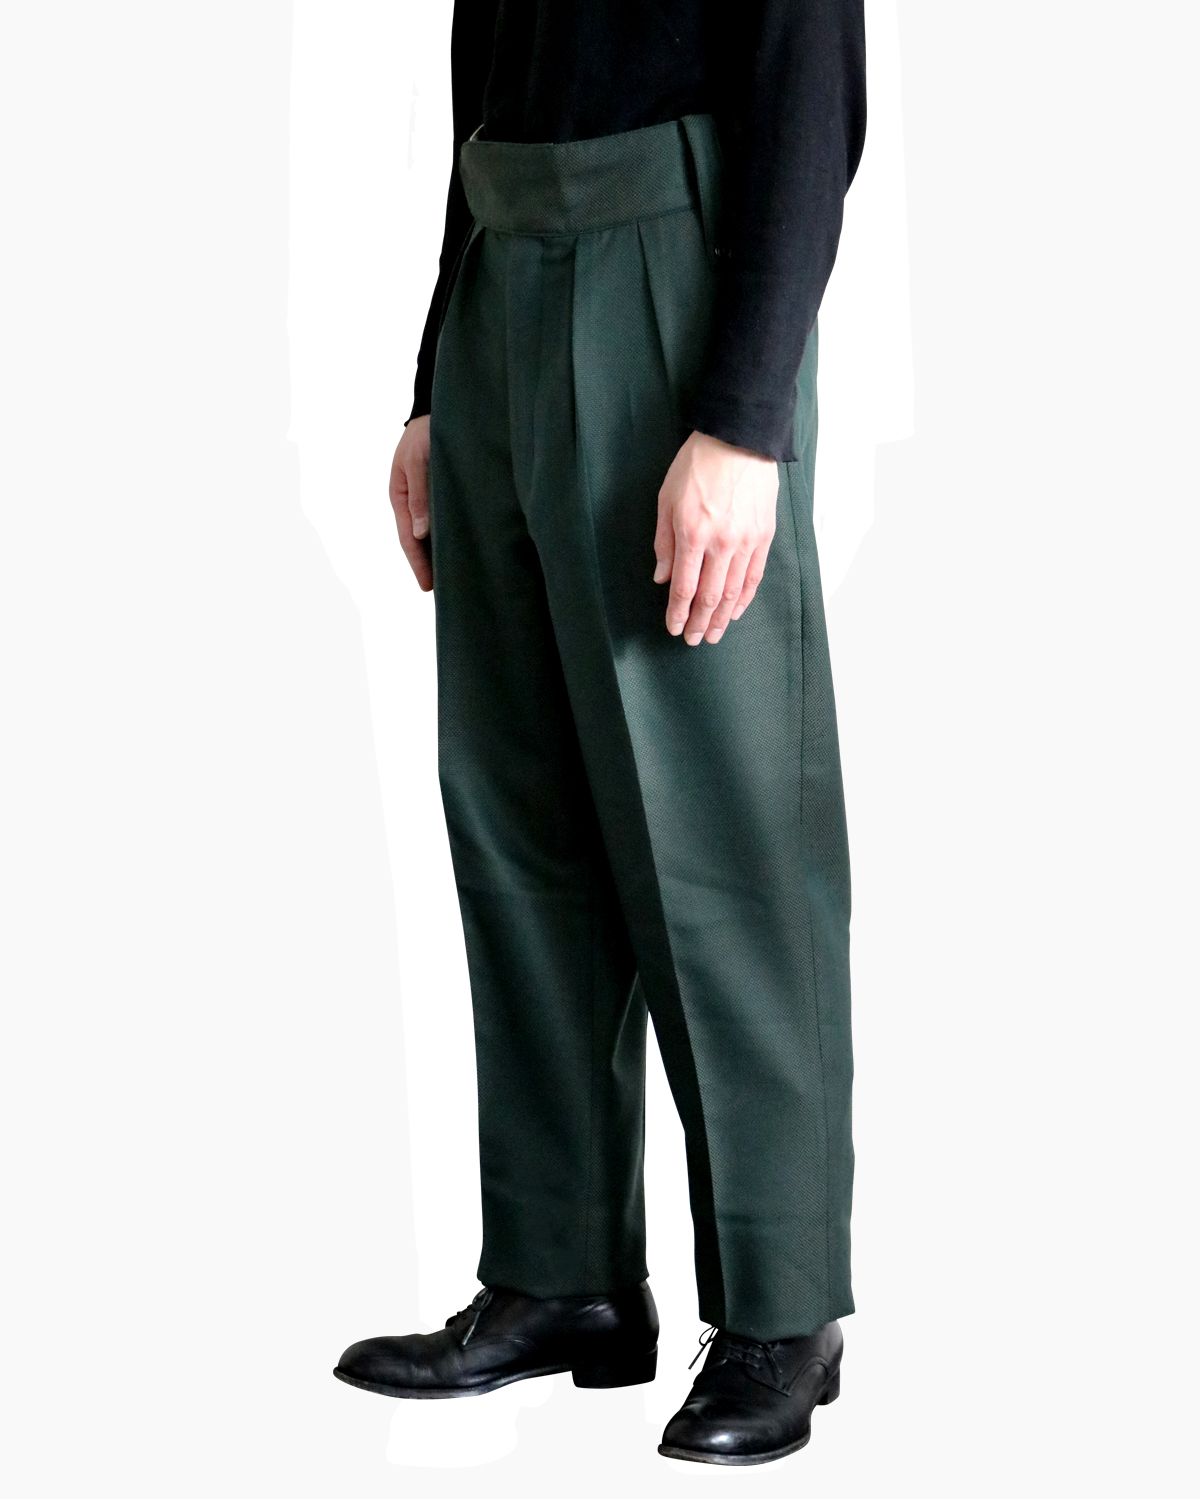 FOX BROTHERS Plain|BELTLESS - Green|NEAT